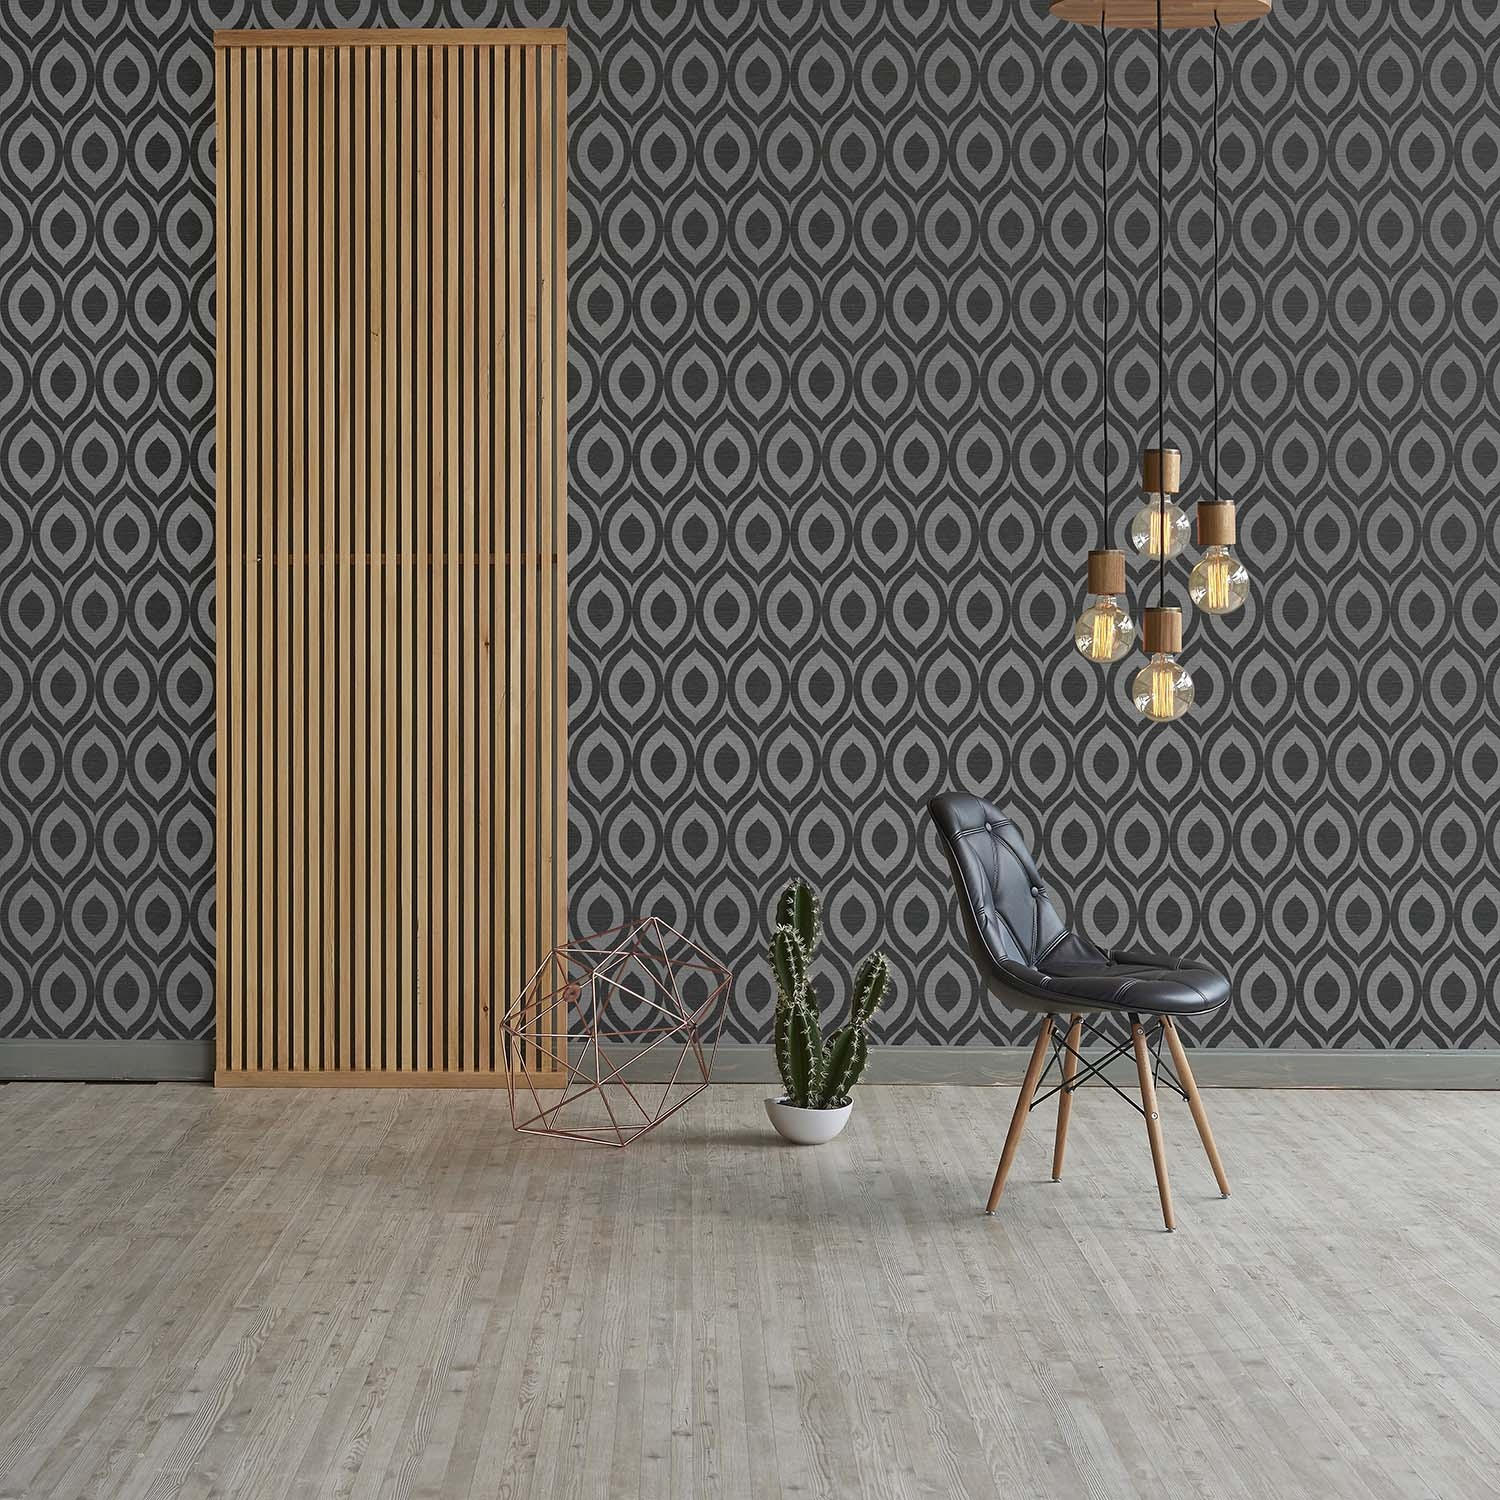 3d Geometric Wallpaper Modern Linen Sheen Effect Luxury Rimini By CWV Wallcoverings LTD